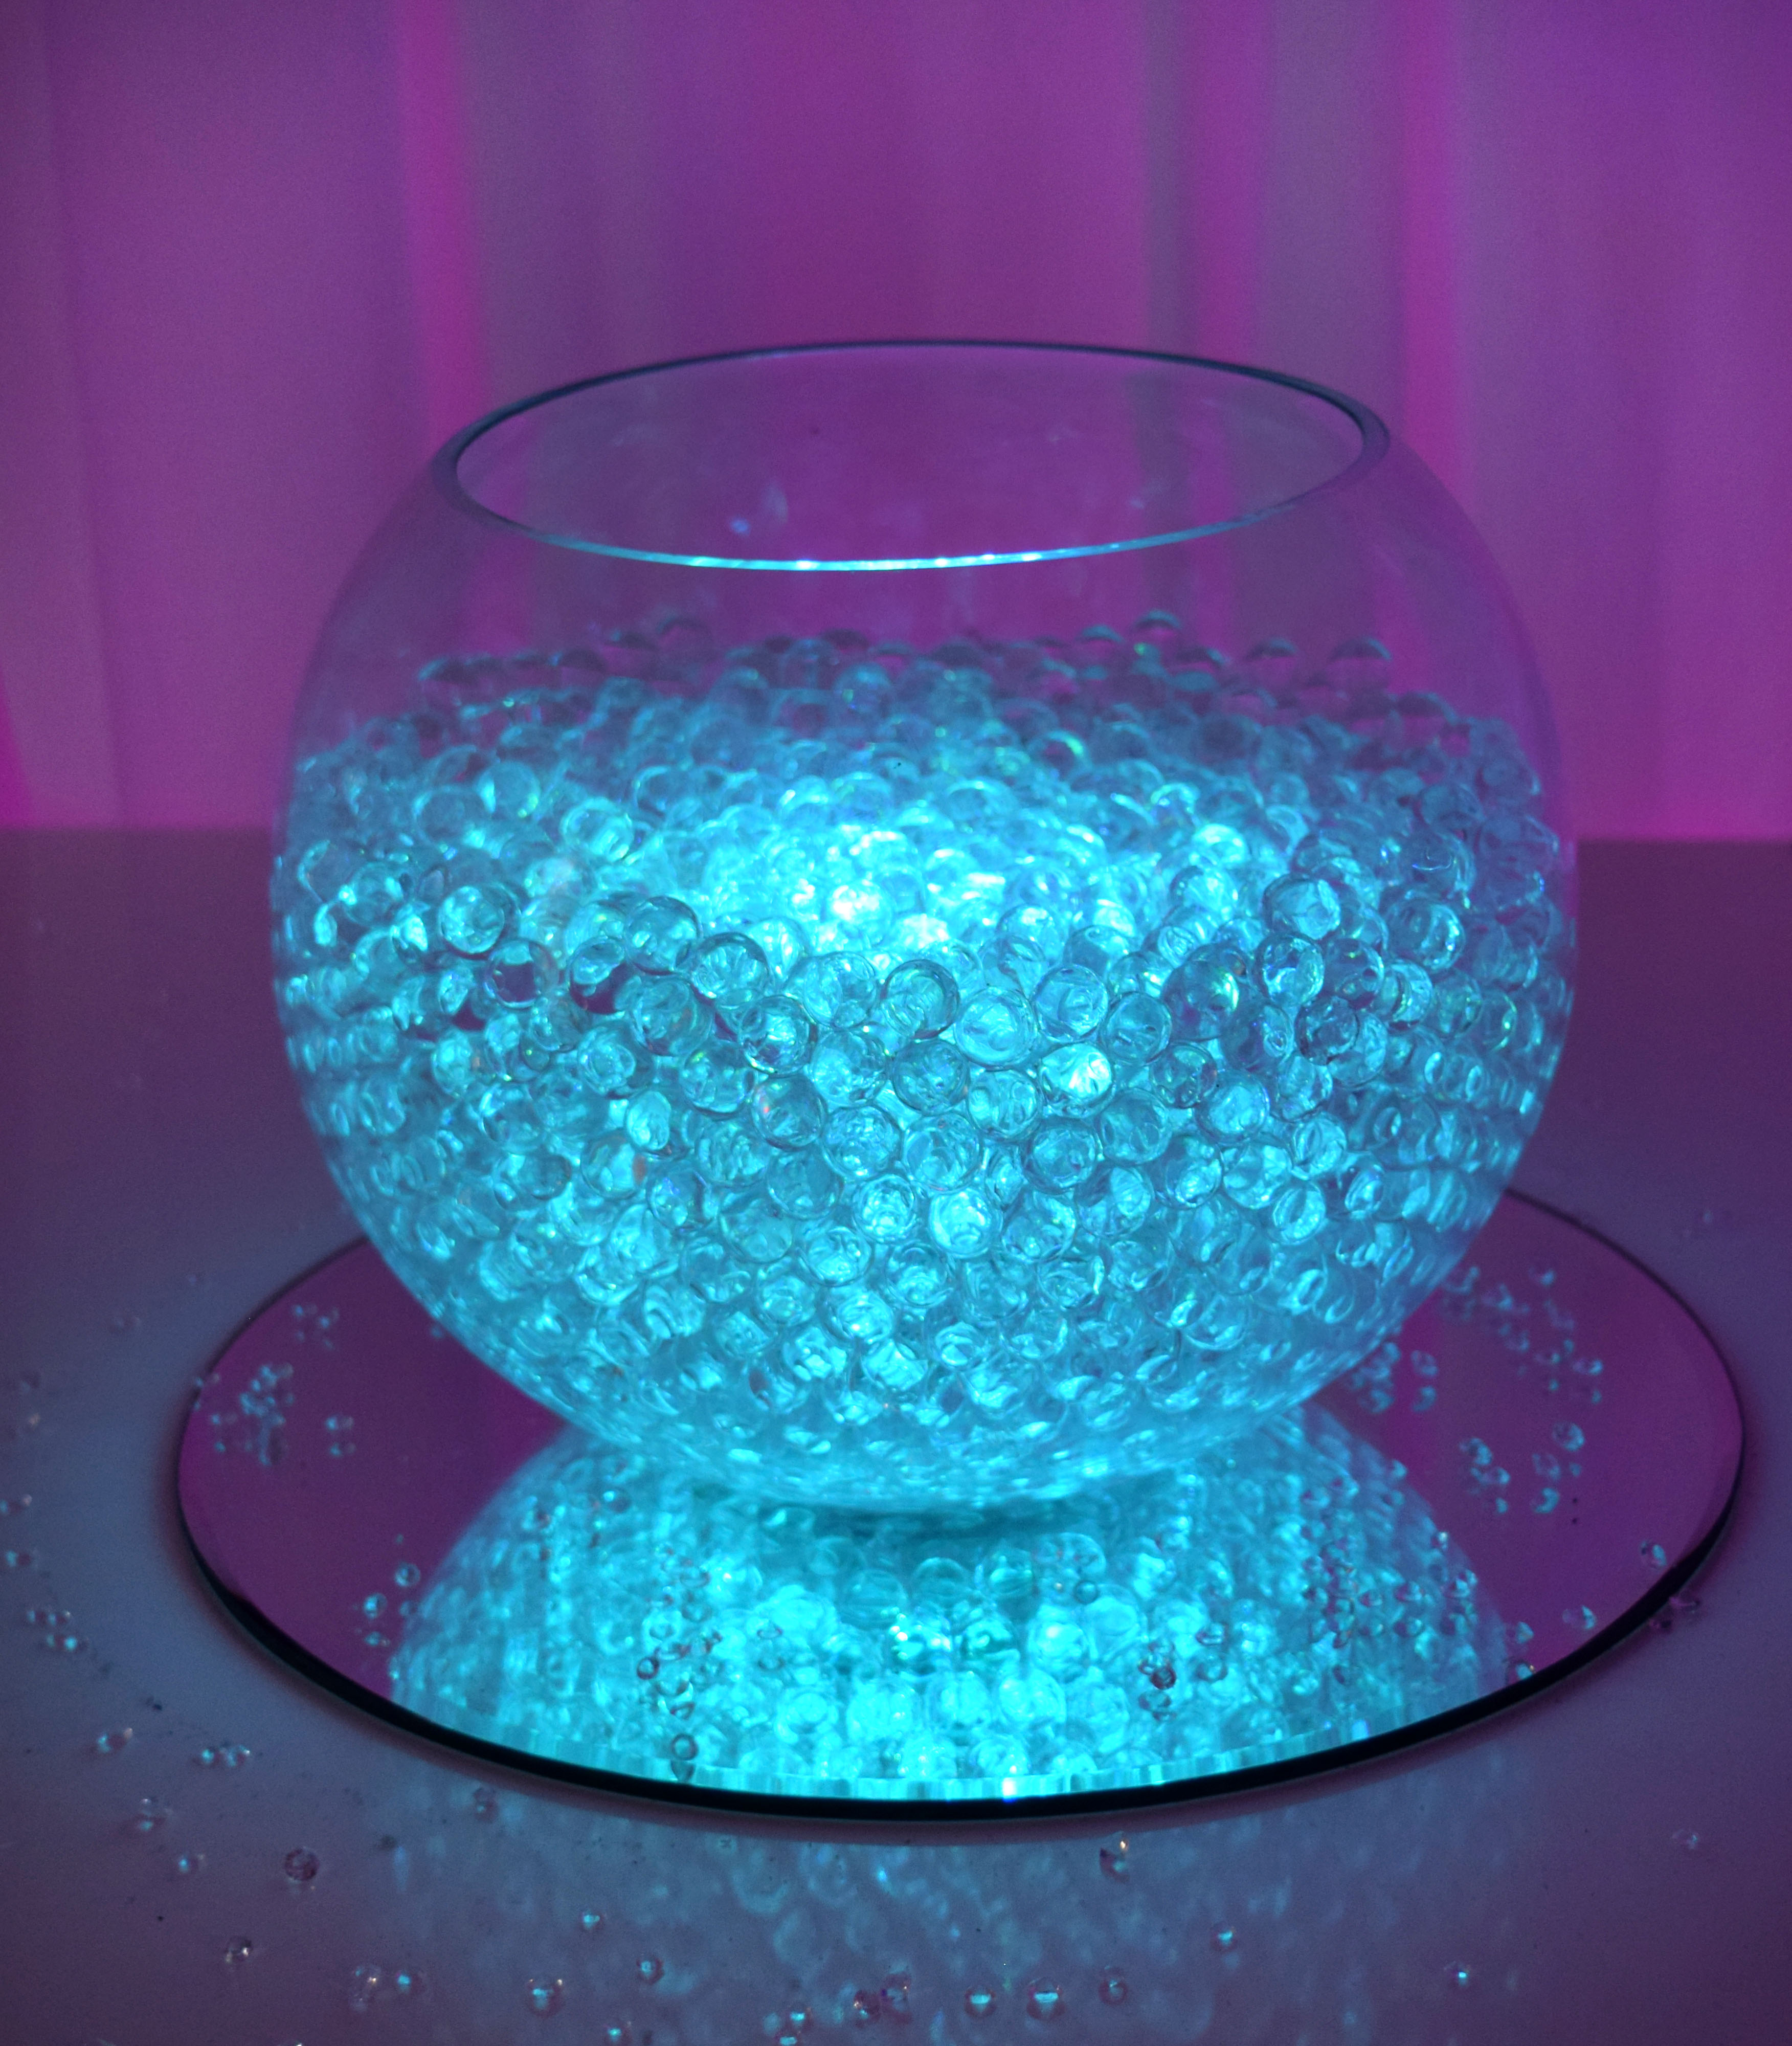 'Bright Light' Fishbowl Hire in Hertfordshire, Bedfordshire, Buckinghamshire, Essex & London